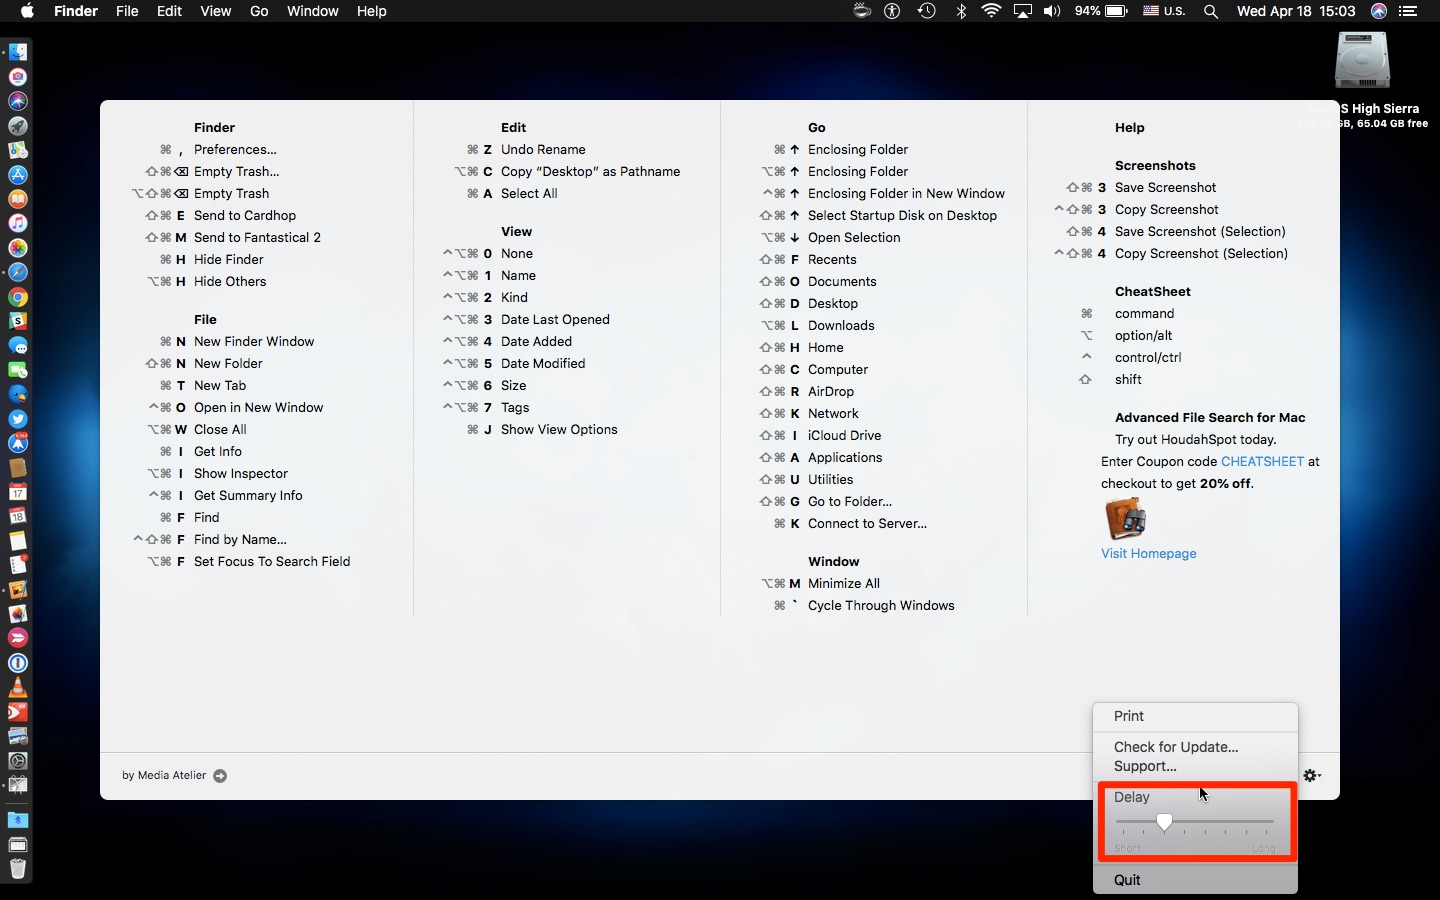 How to view available keyboard shortcuts in every Mac app